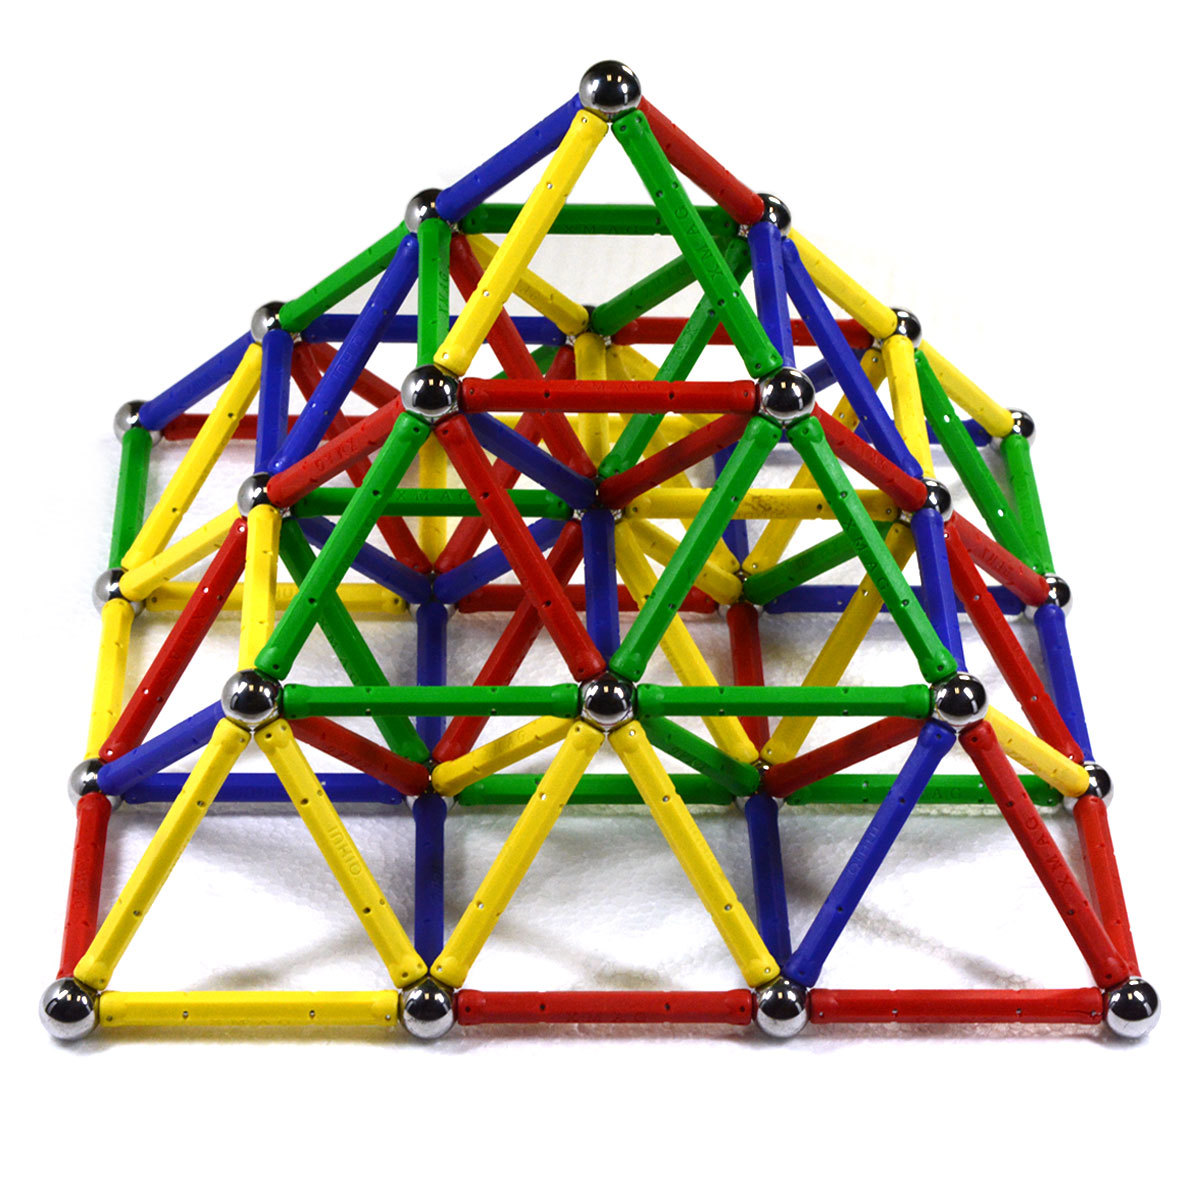 magnetic-building-toy5.jpg